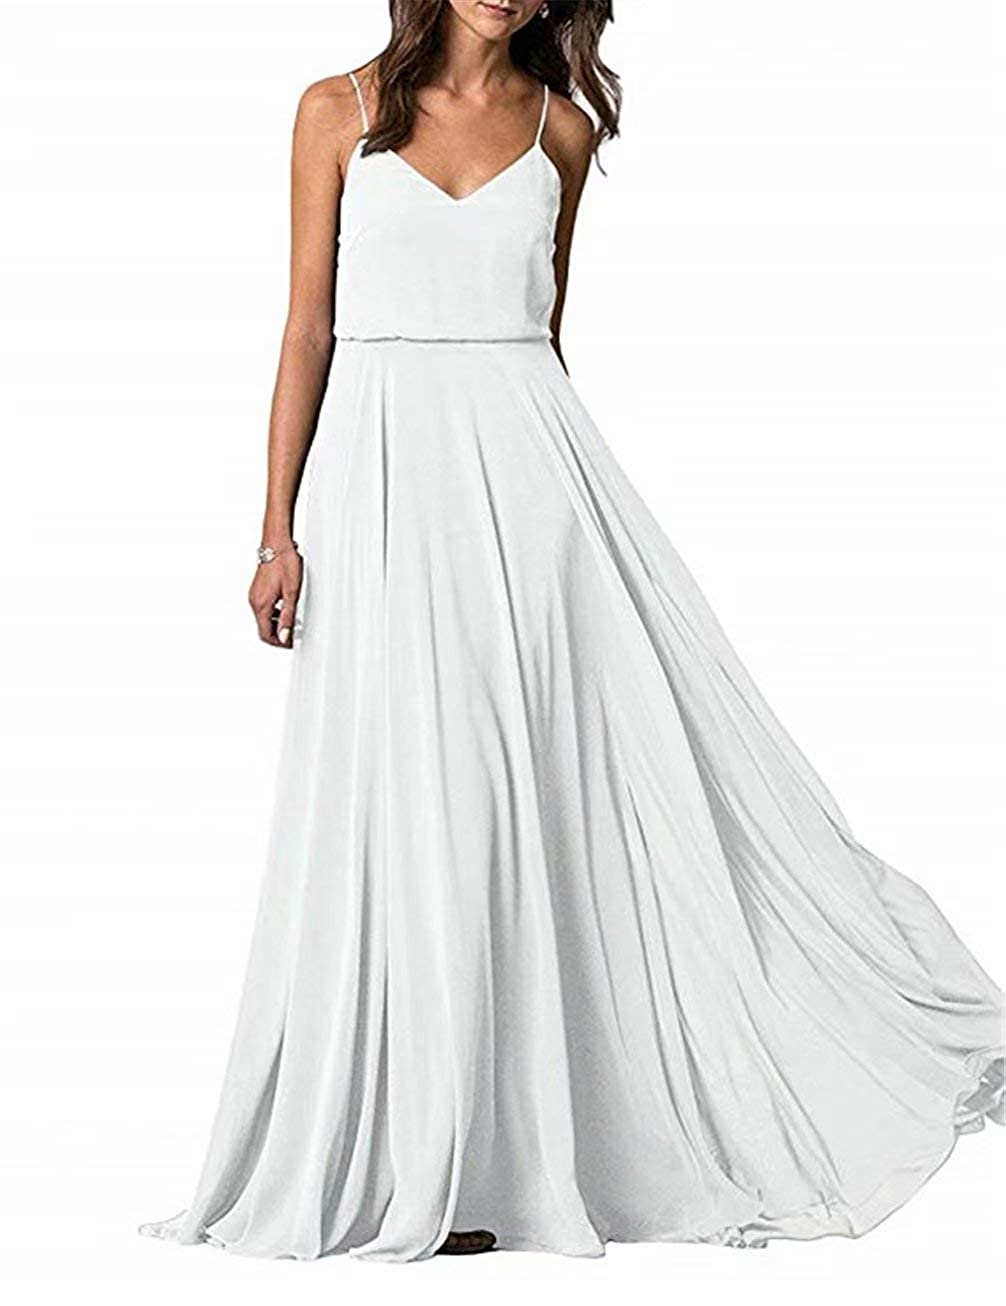 Fishlove Spaghetti Strap V-Neck Long Bridesmaid Dress Vestido De Formatura Open Back Evening Dress White